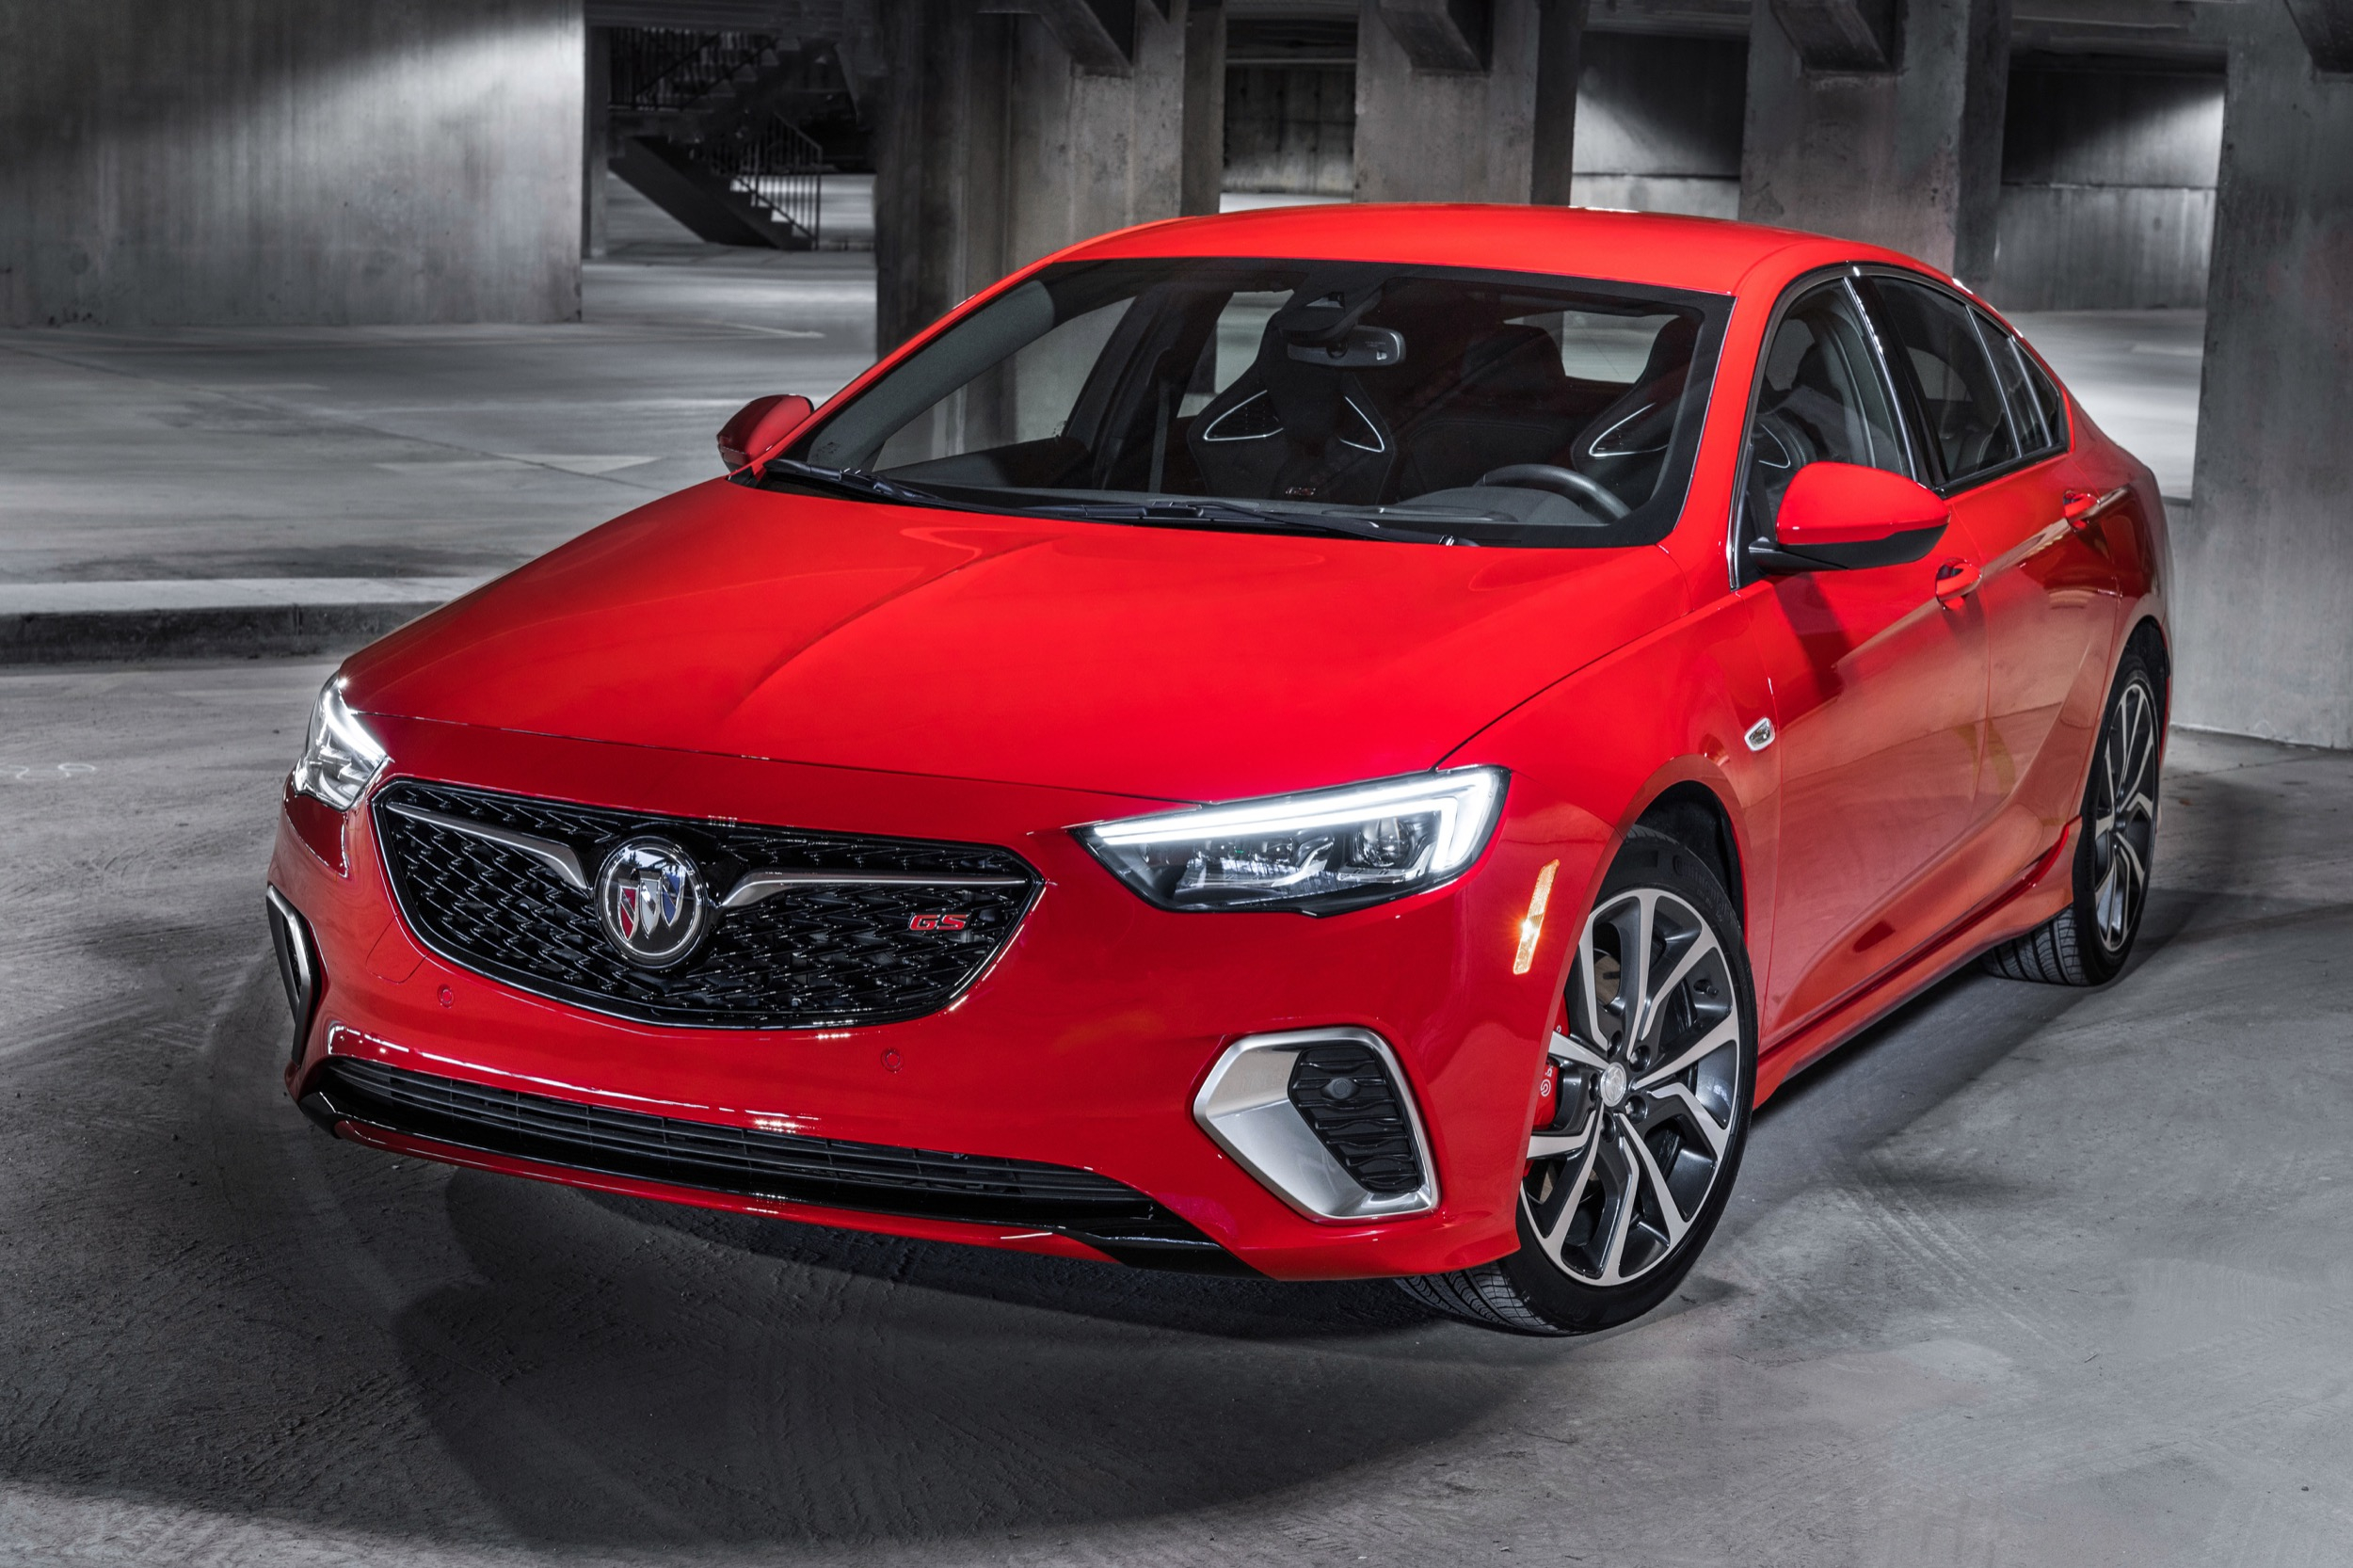 Buick Regal Discount Totals $5,500 June 2020 | Gm Authority New 2021 Buick Regal Lease, Length, Trim Levels